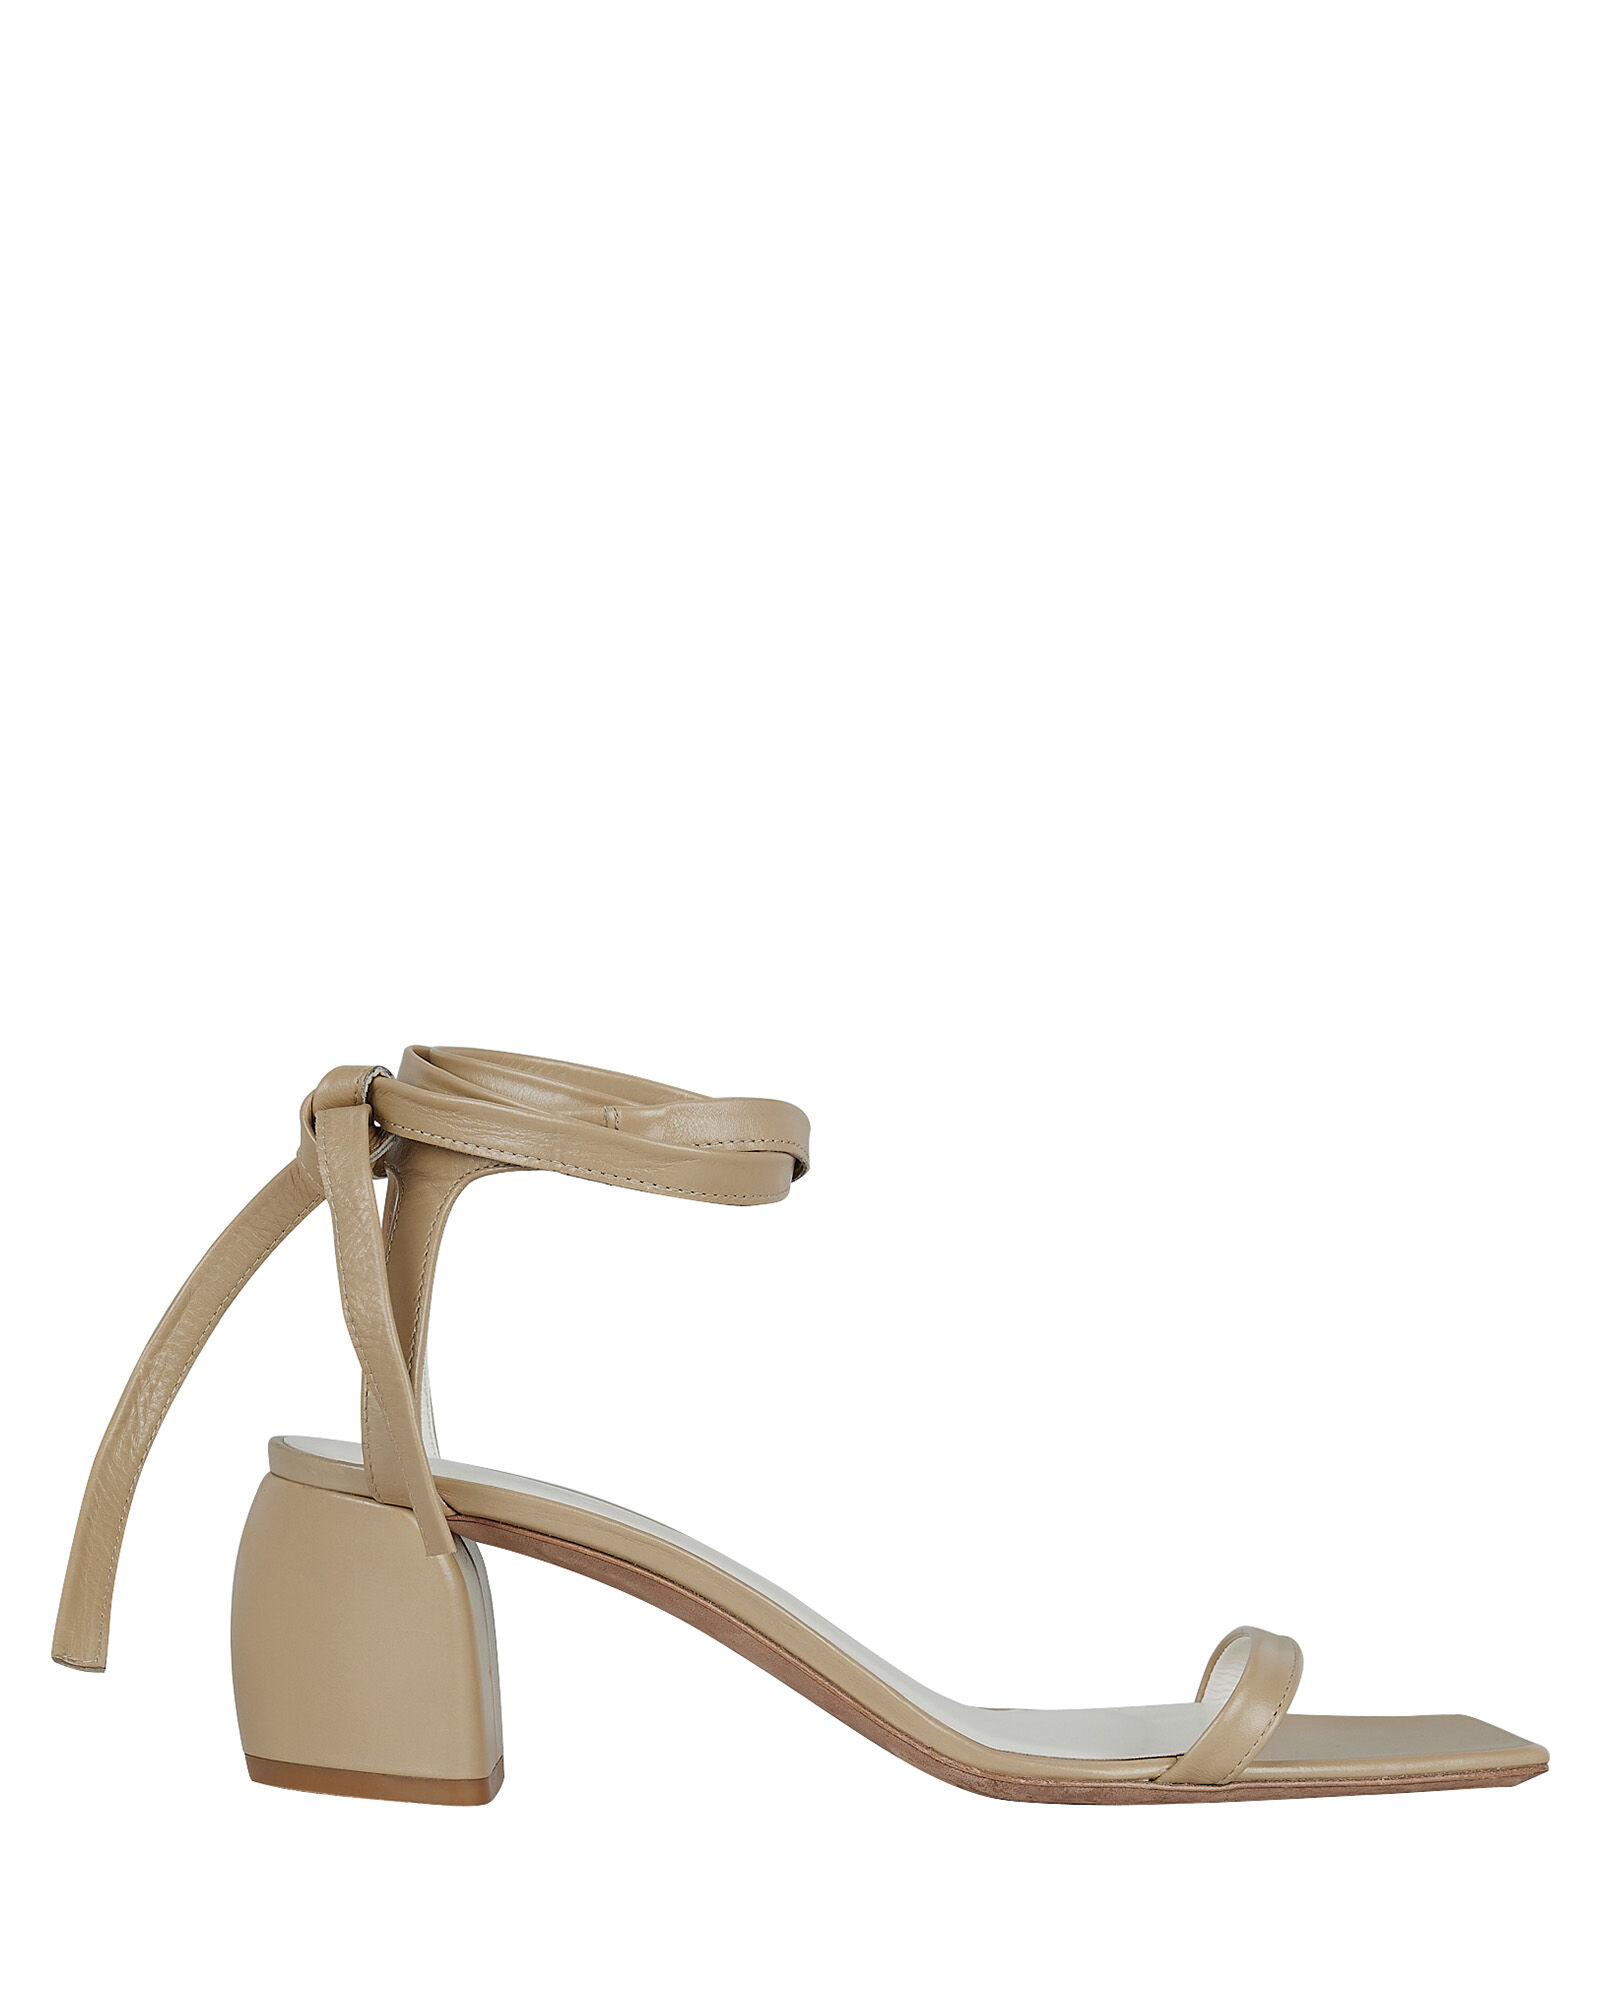 Shyam Ankle Tie Leather Sandals, TAN, hi-res